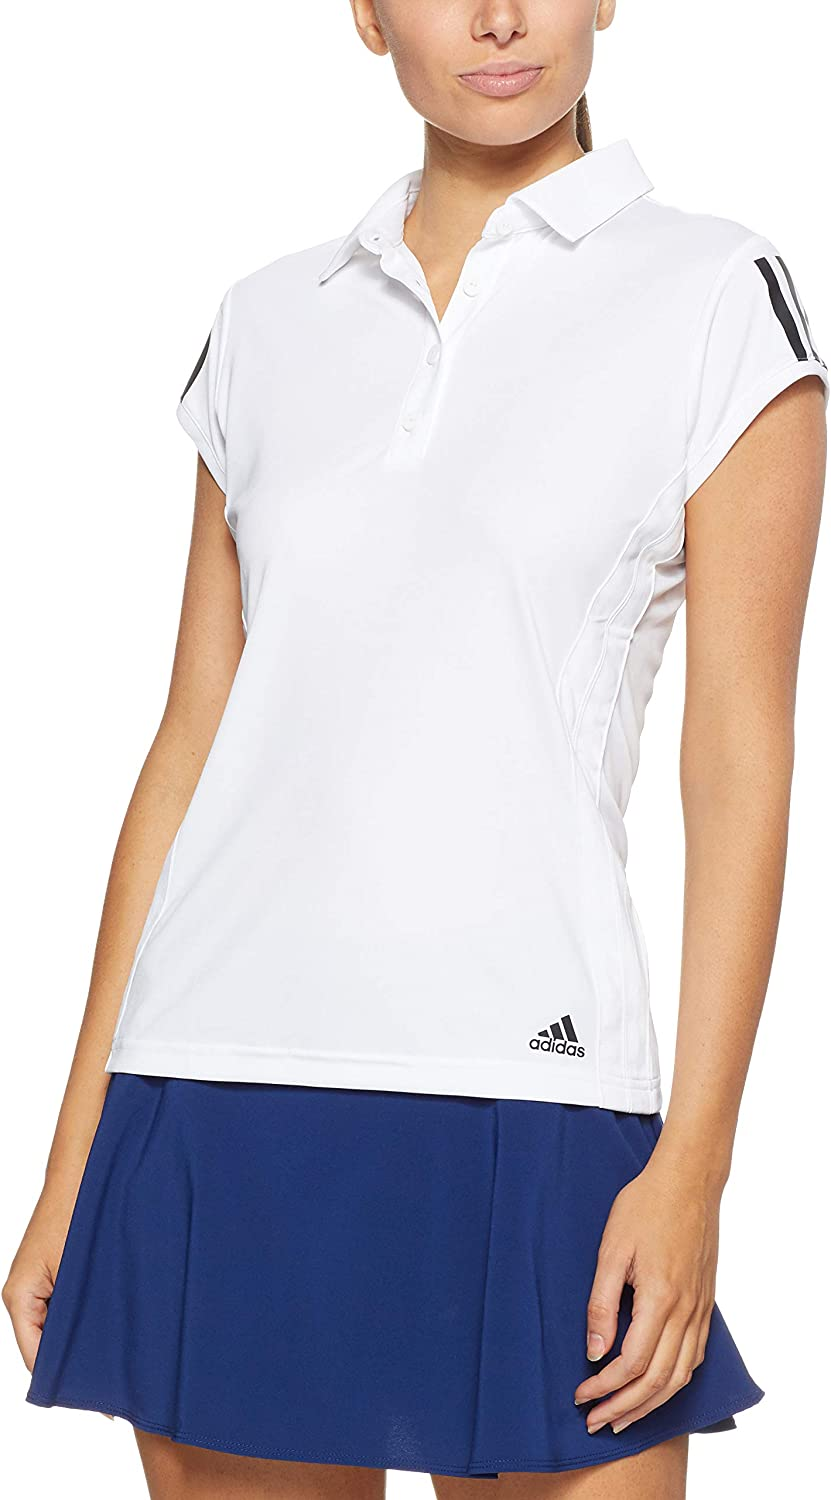 adidas Club 3 Stripes Manga Corta Polo de Camiseta: Amazon.es ...